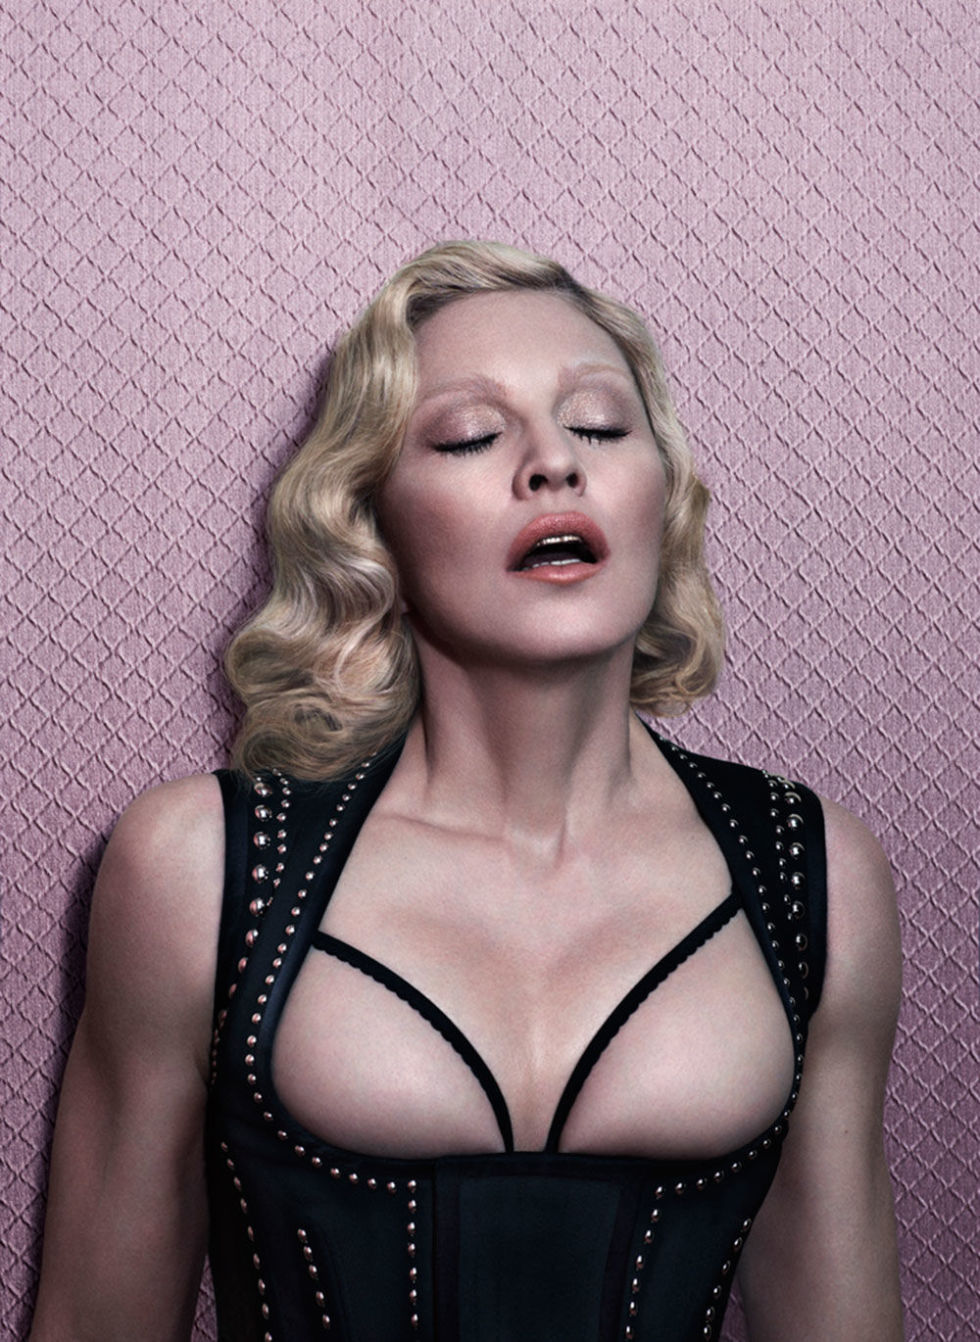 Topless magazine madonna interview